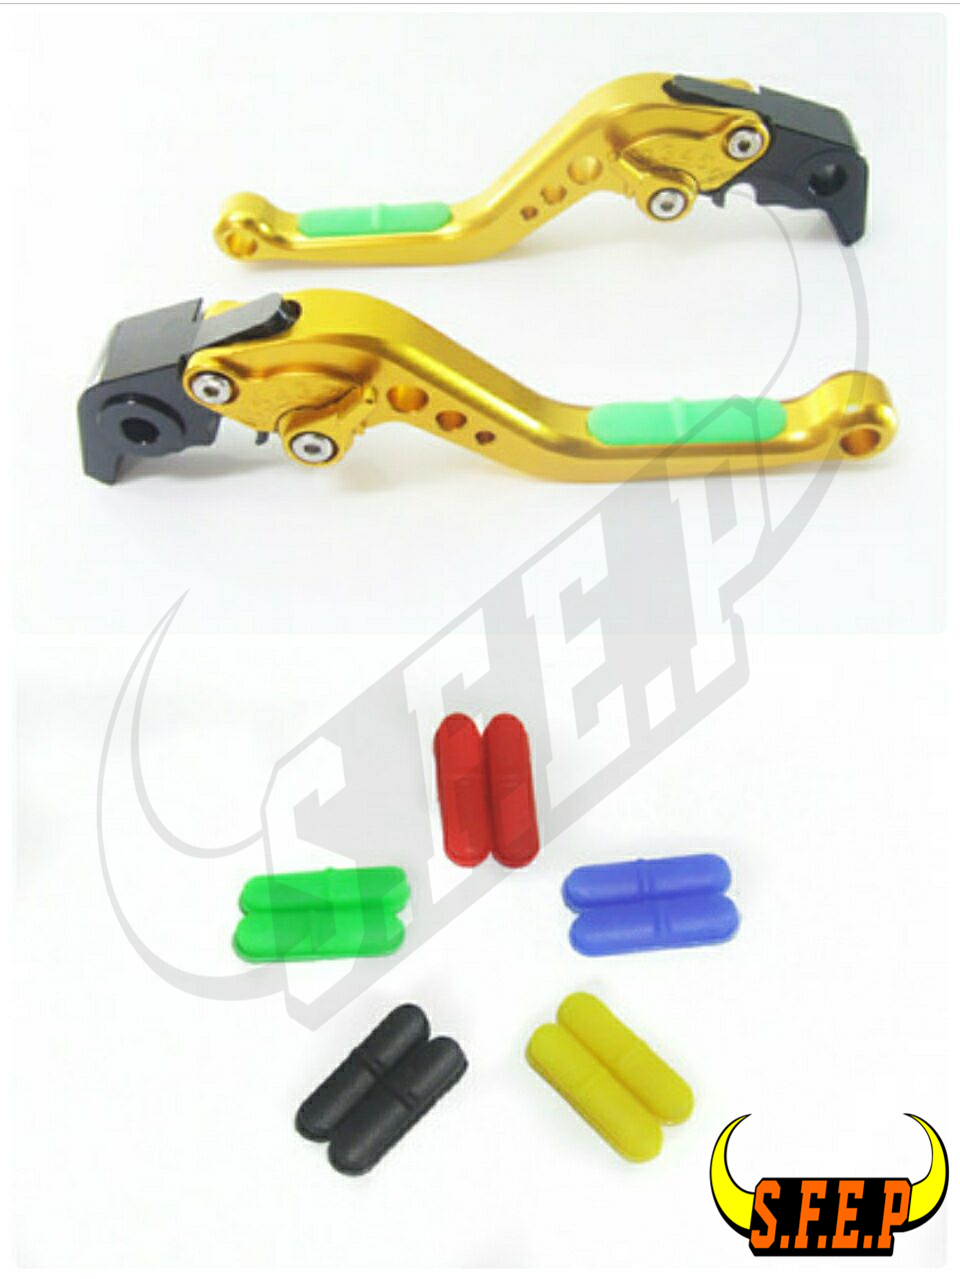 CNC Adjustable Motorcycle Brake and Clutch Levers with Anti-Slip For Suzuki SV1000/S 2003-2007